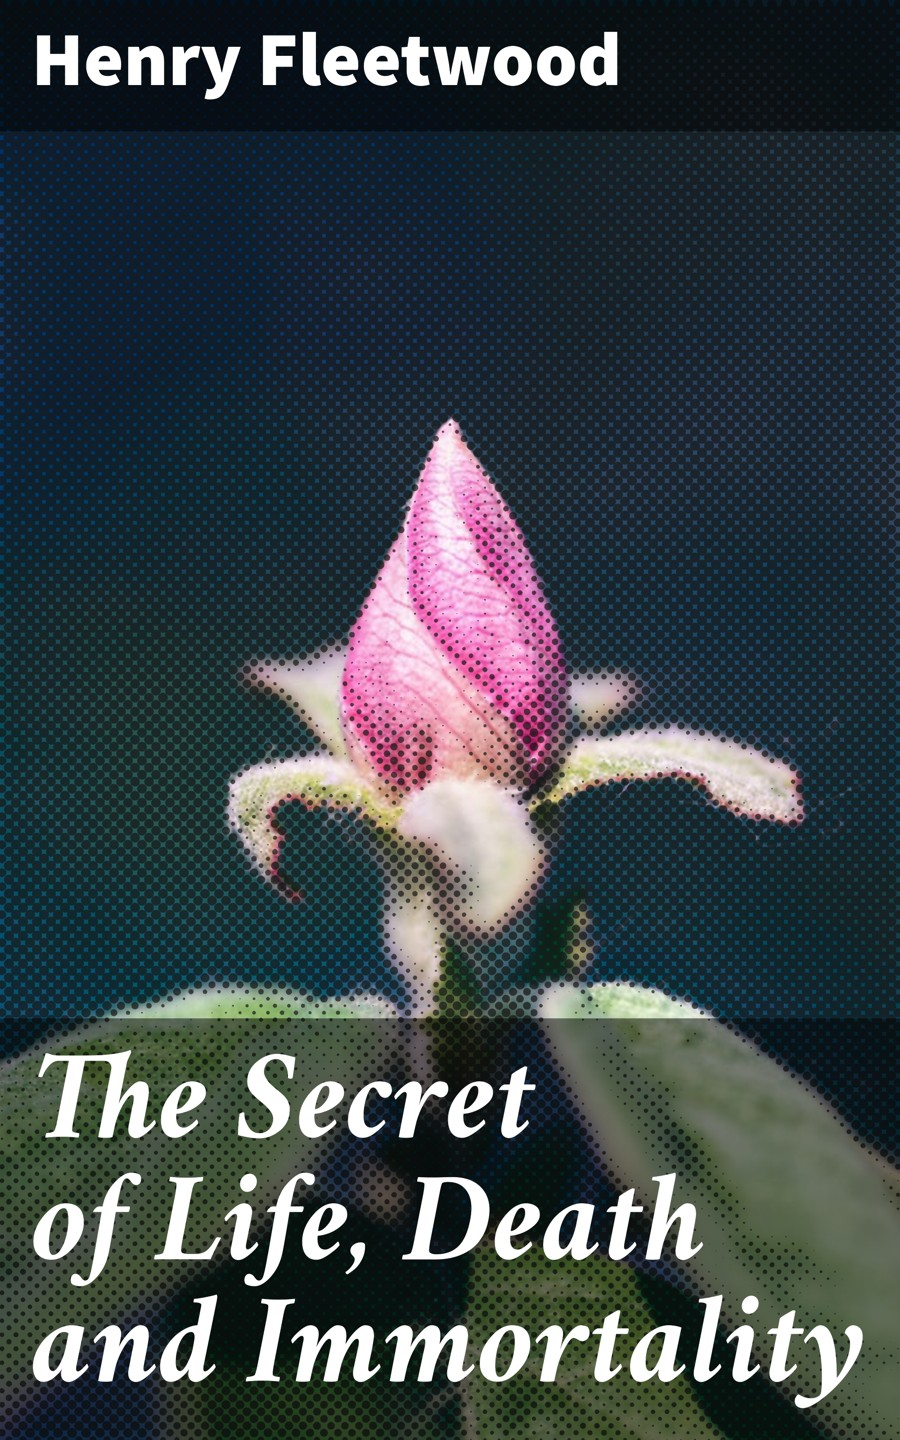 Henry Fleetwood The Secret of Life, Death and Immortality